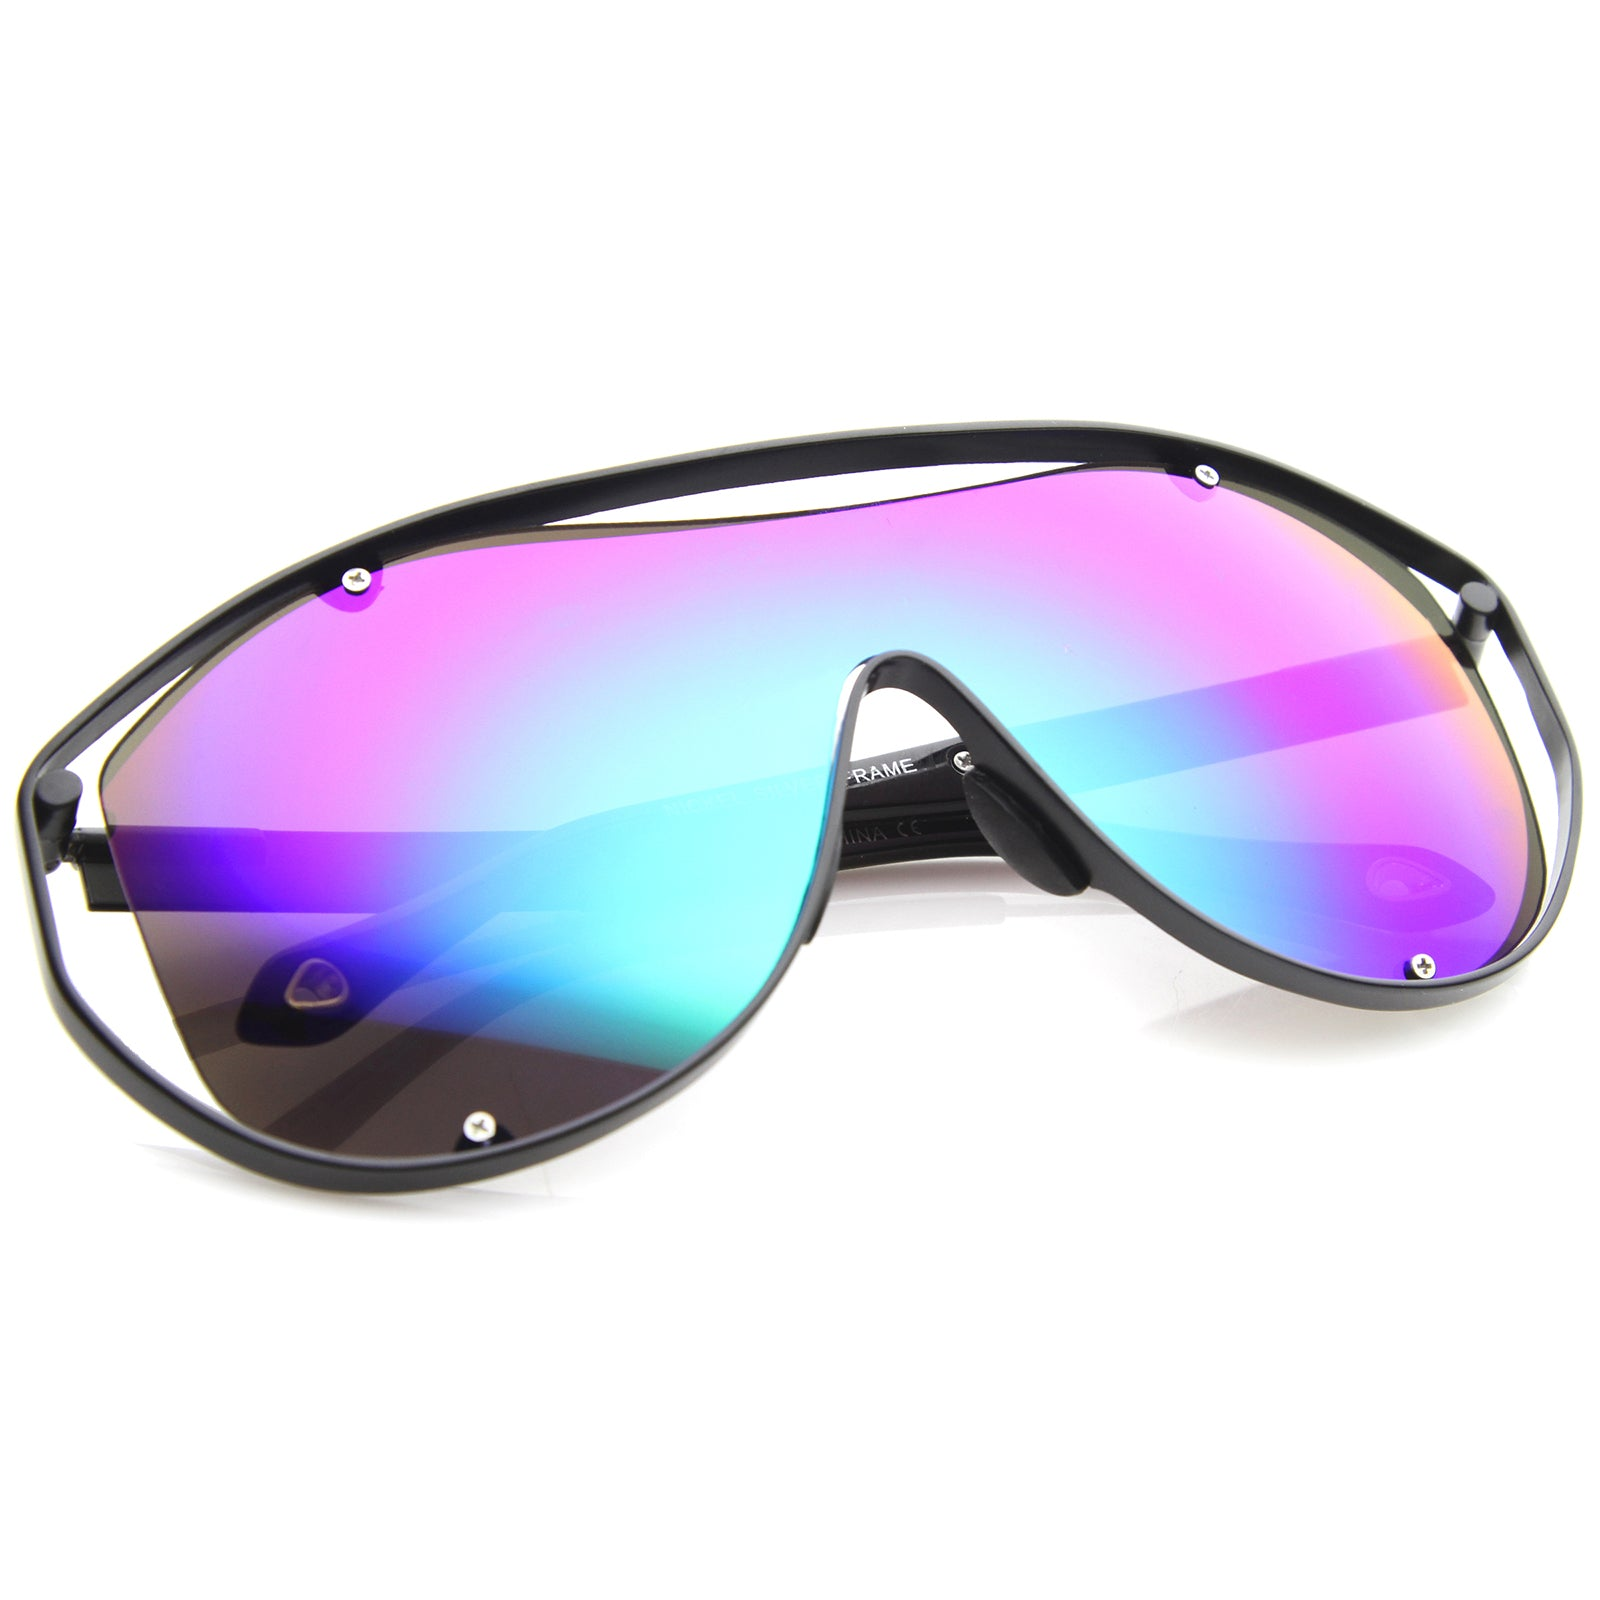 Modern Fashion Metal Frame Inner Rimless Mirror Lens Shield Sunglasses - sunglass.la - 4